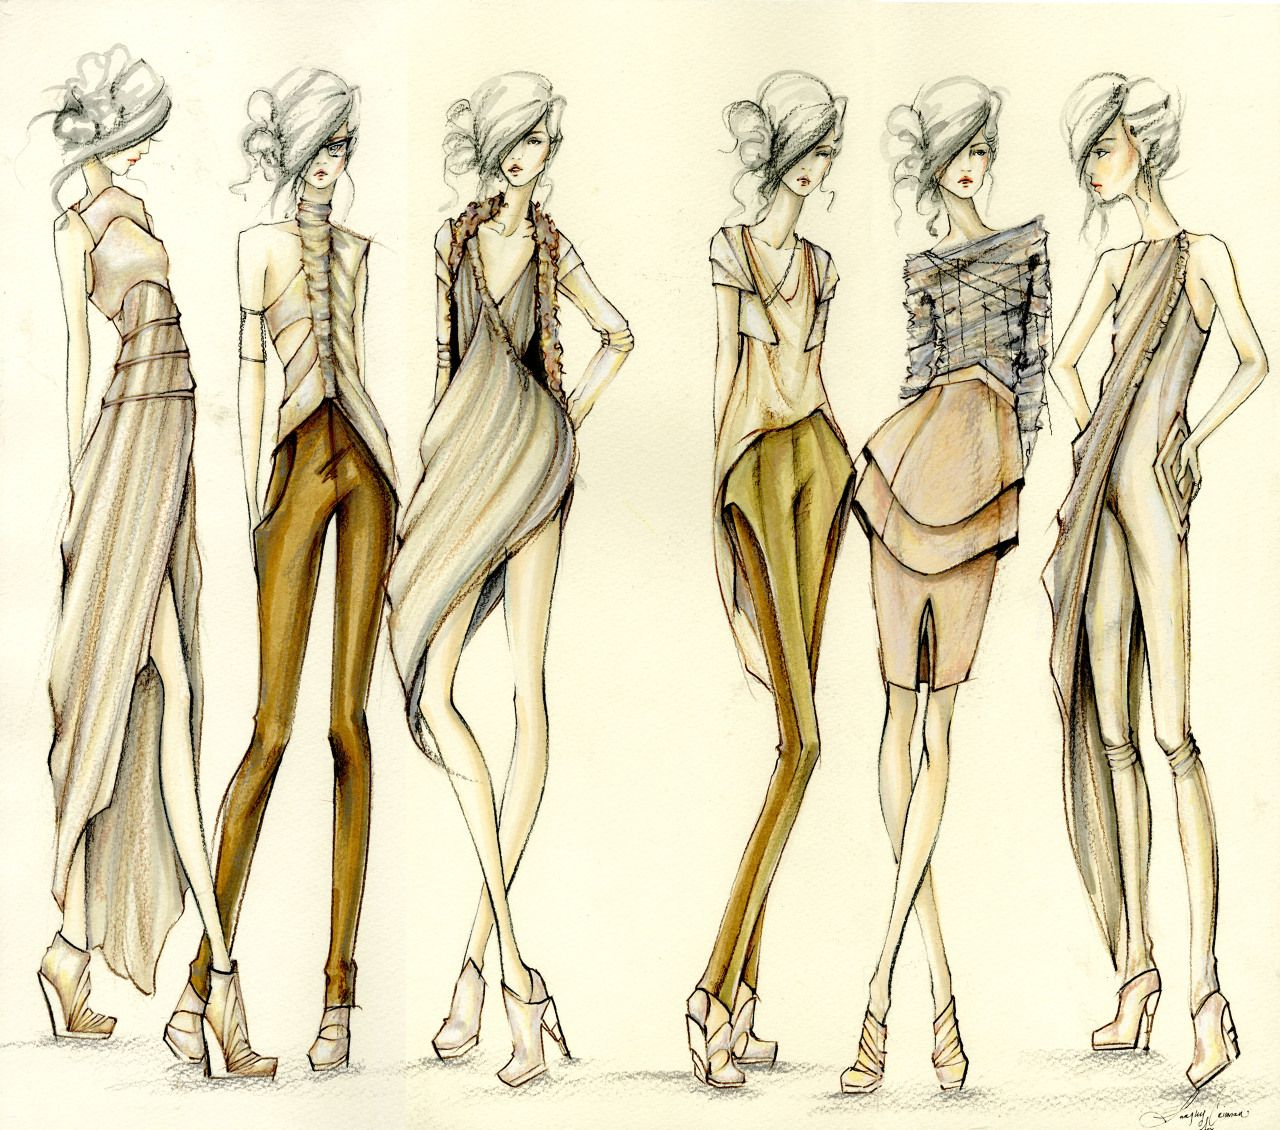 Langley Fox Hemingway super chic fashion design illustrations, style drawings